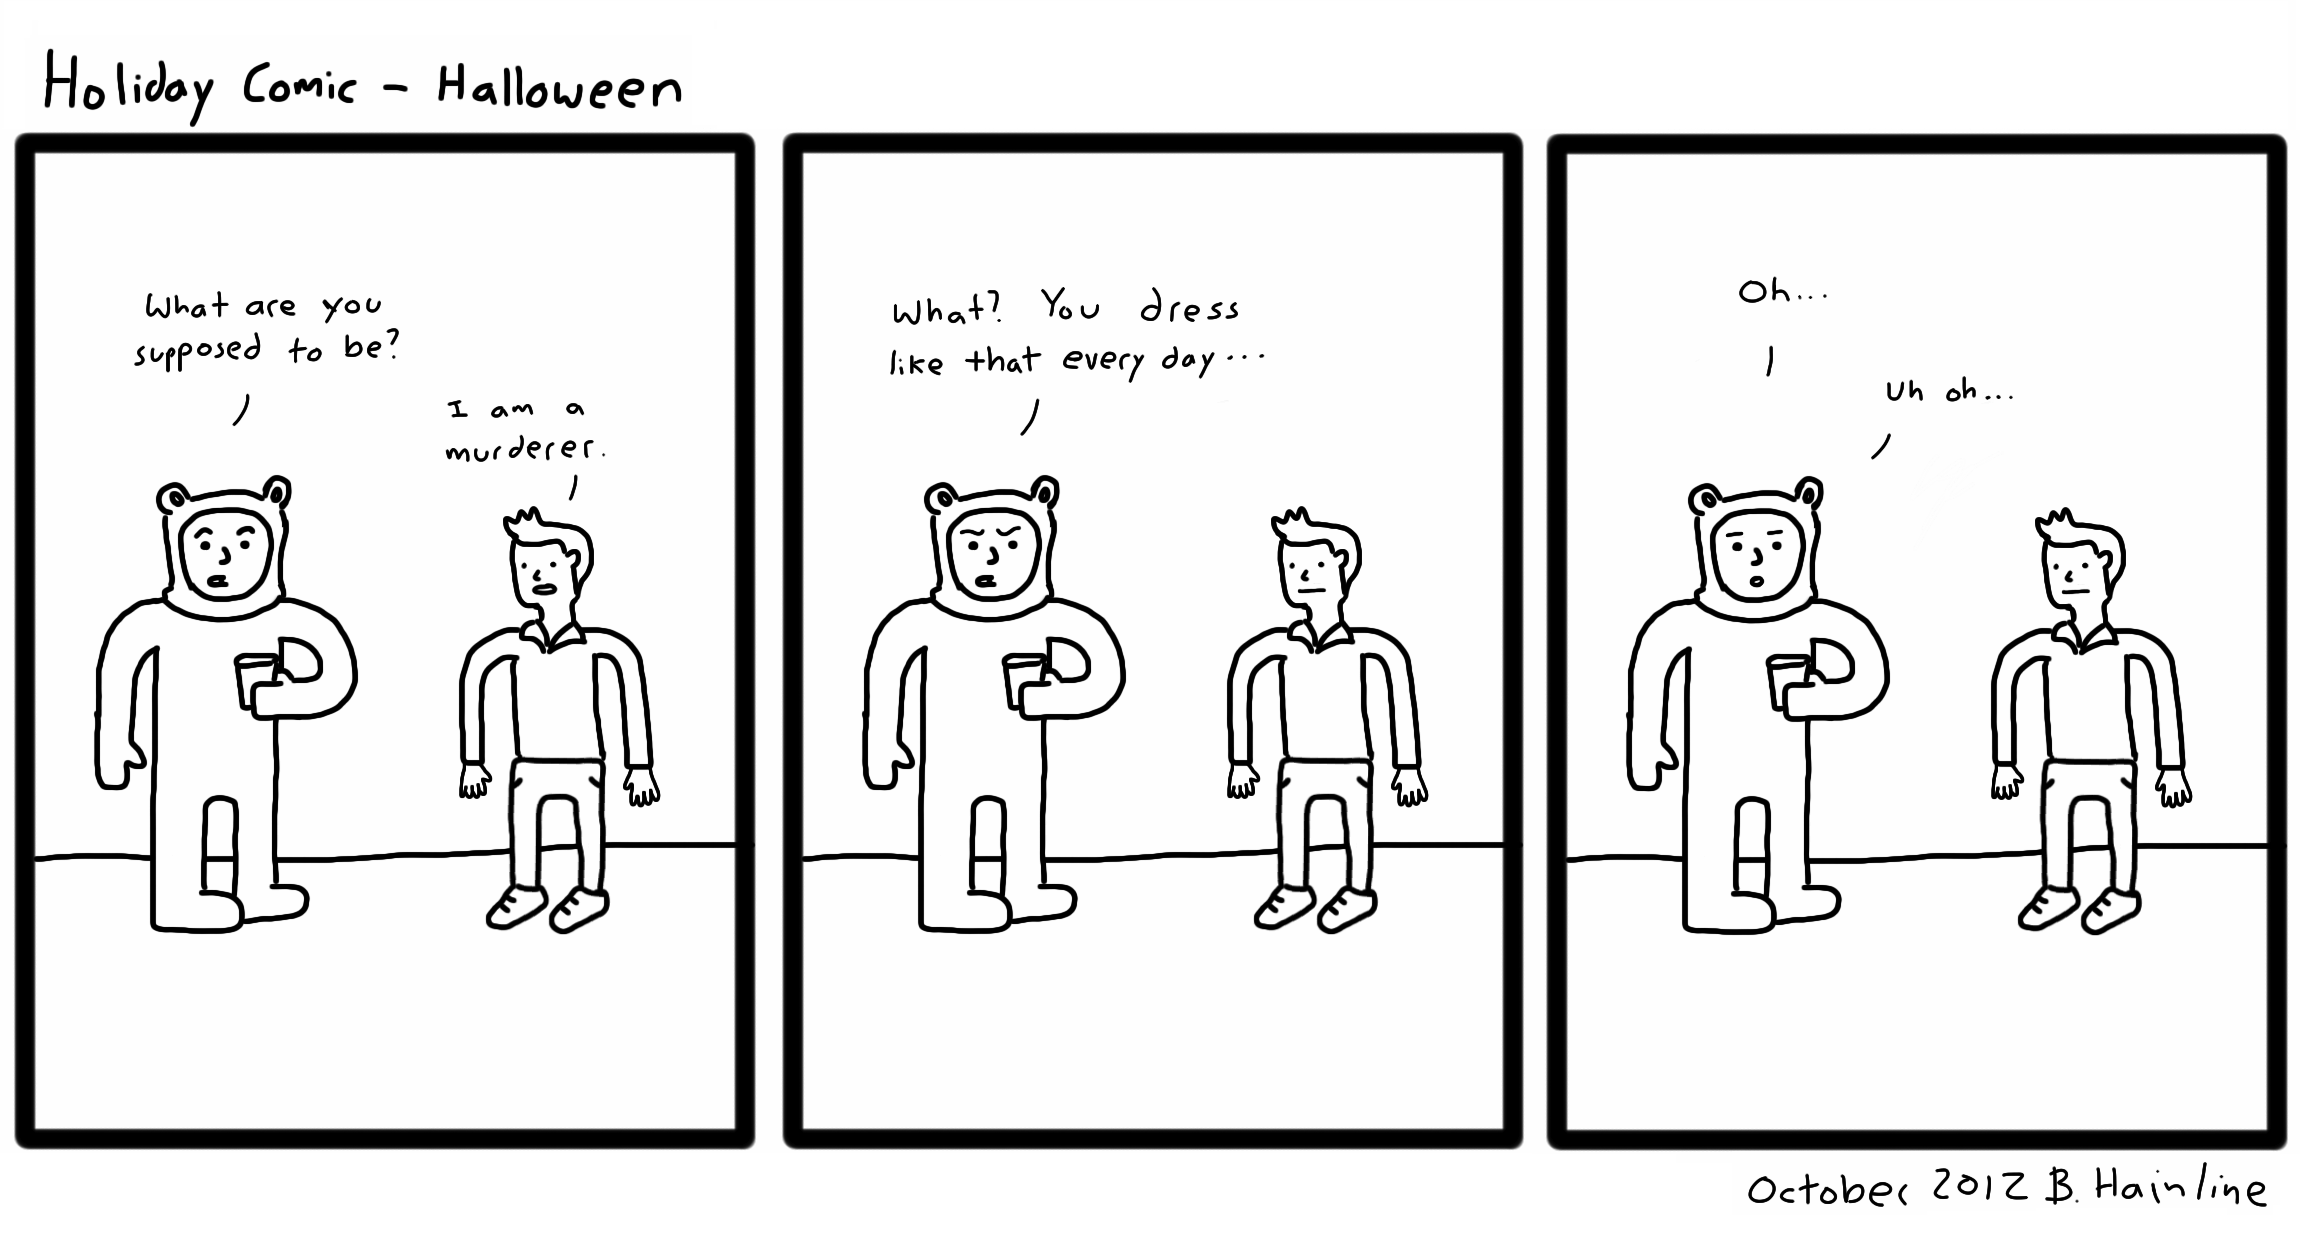 Holiday Comic - Halloween